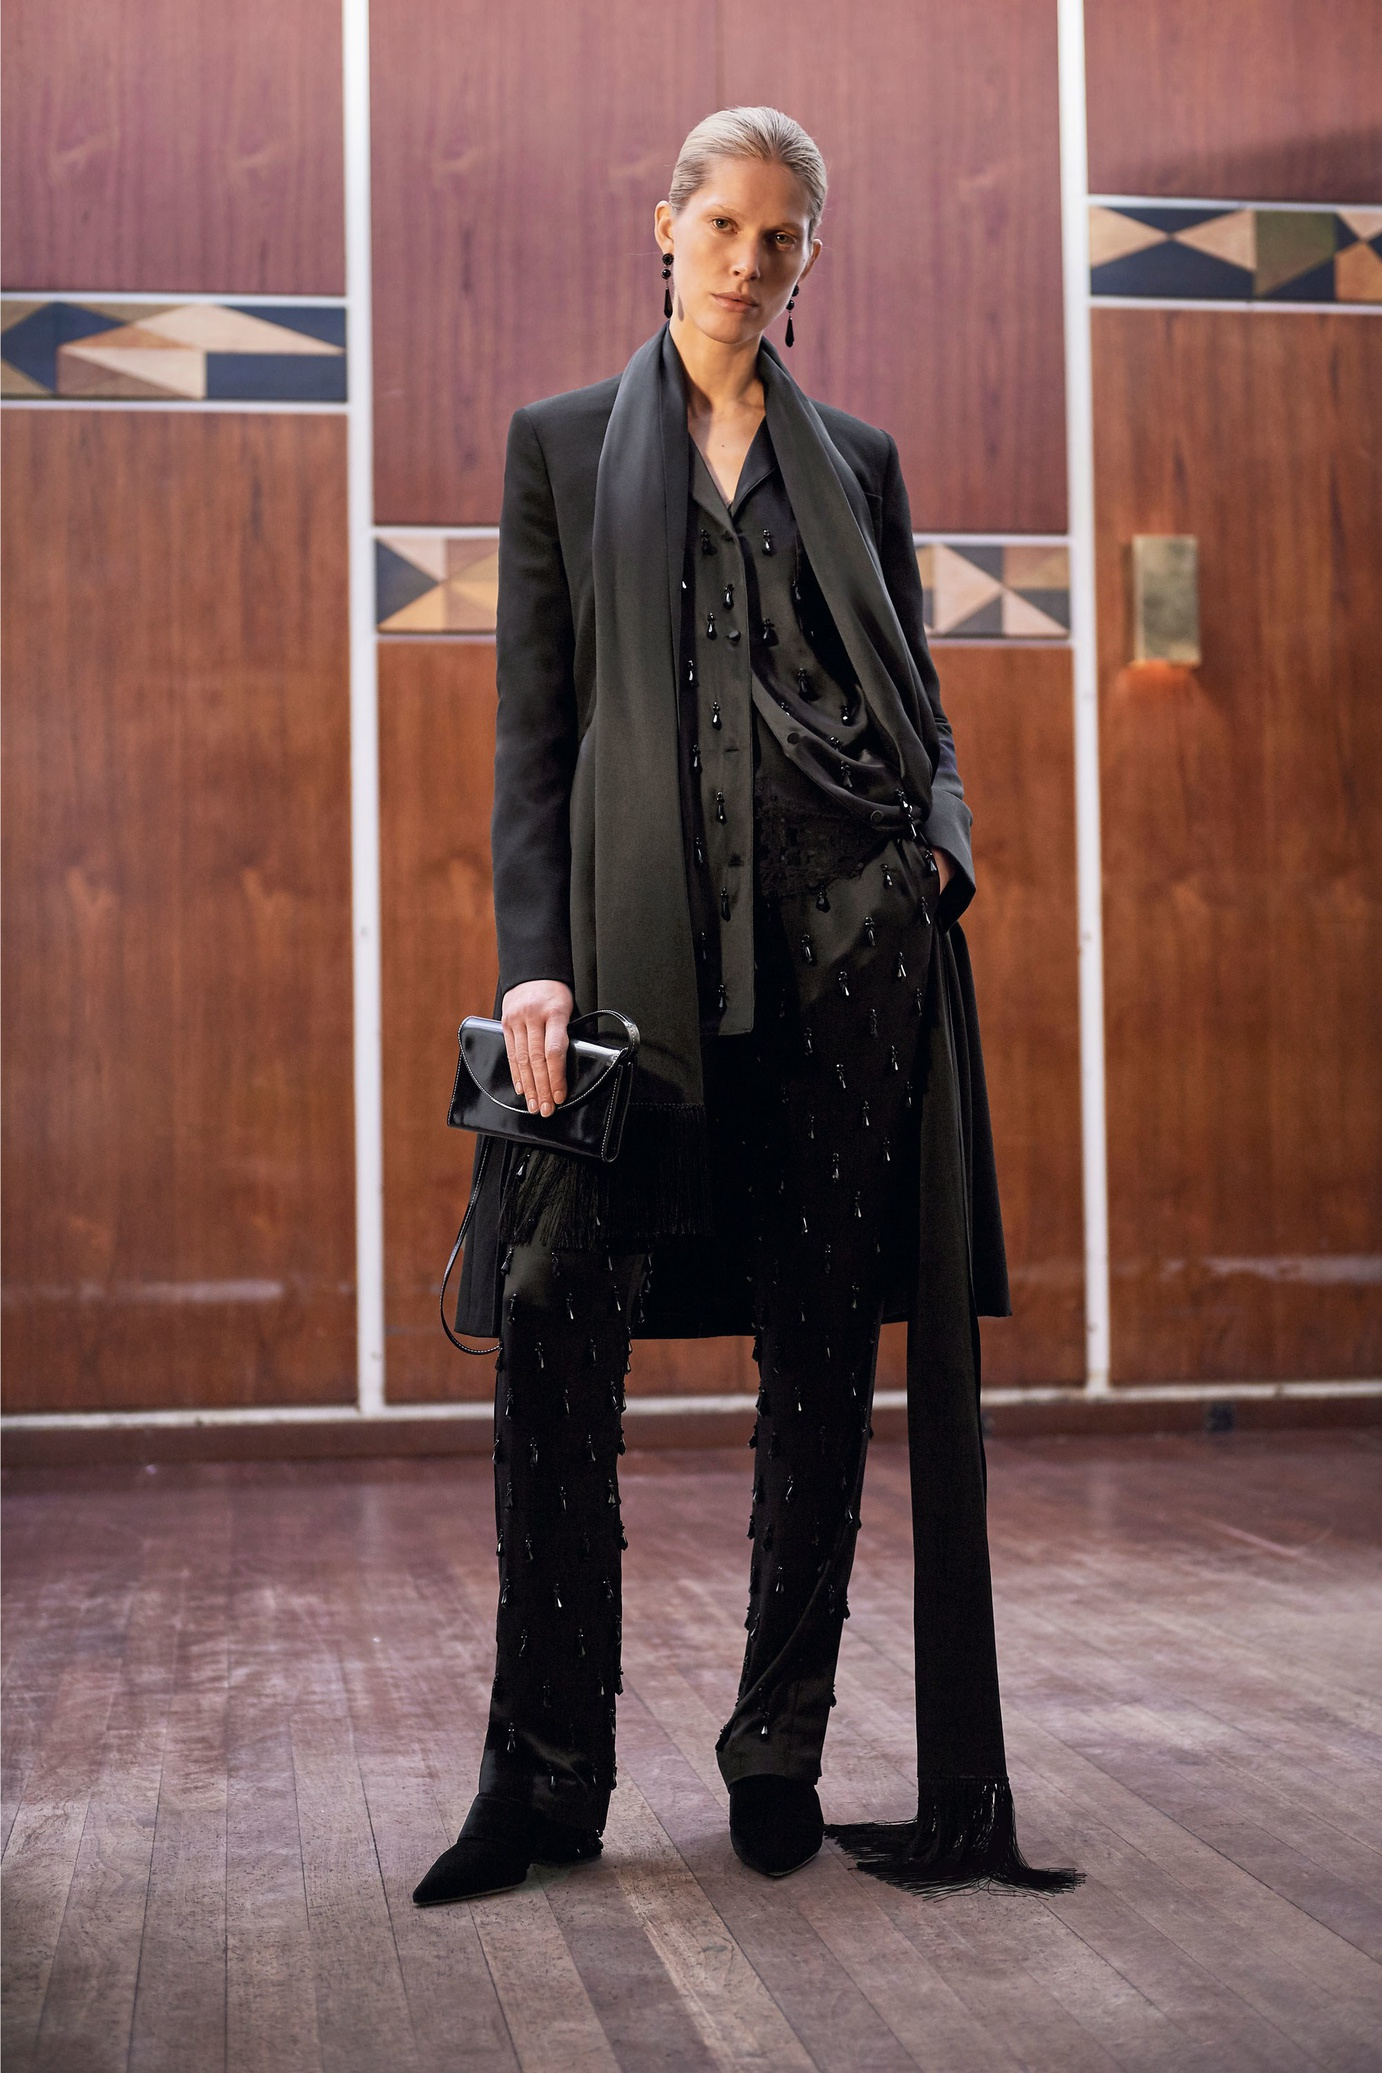 09_givenchy_prefall_17_jpg_684_north_1382x_black